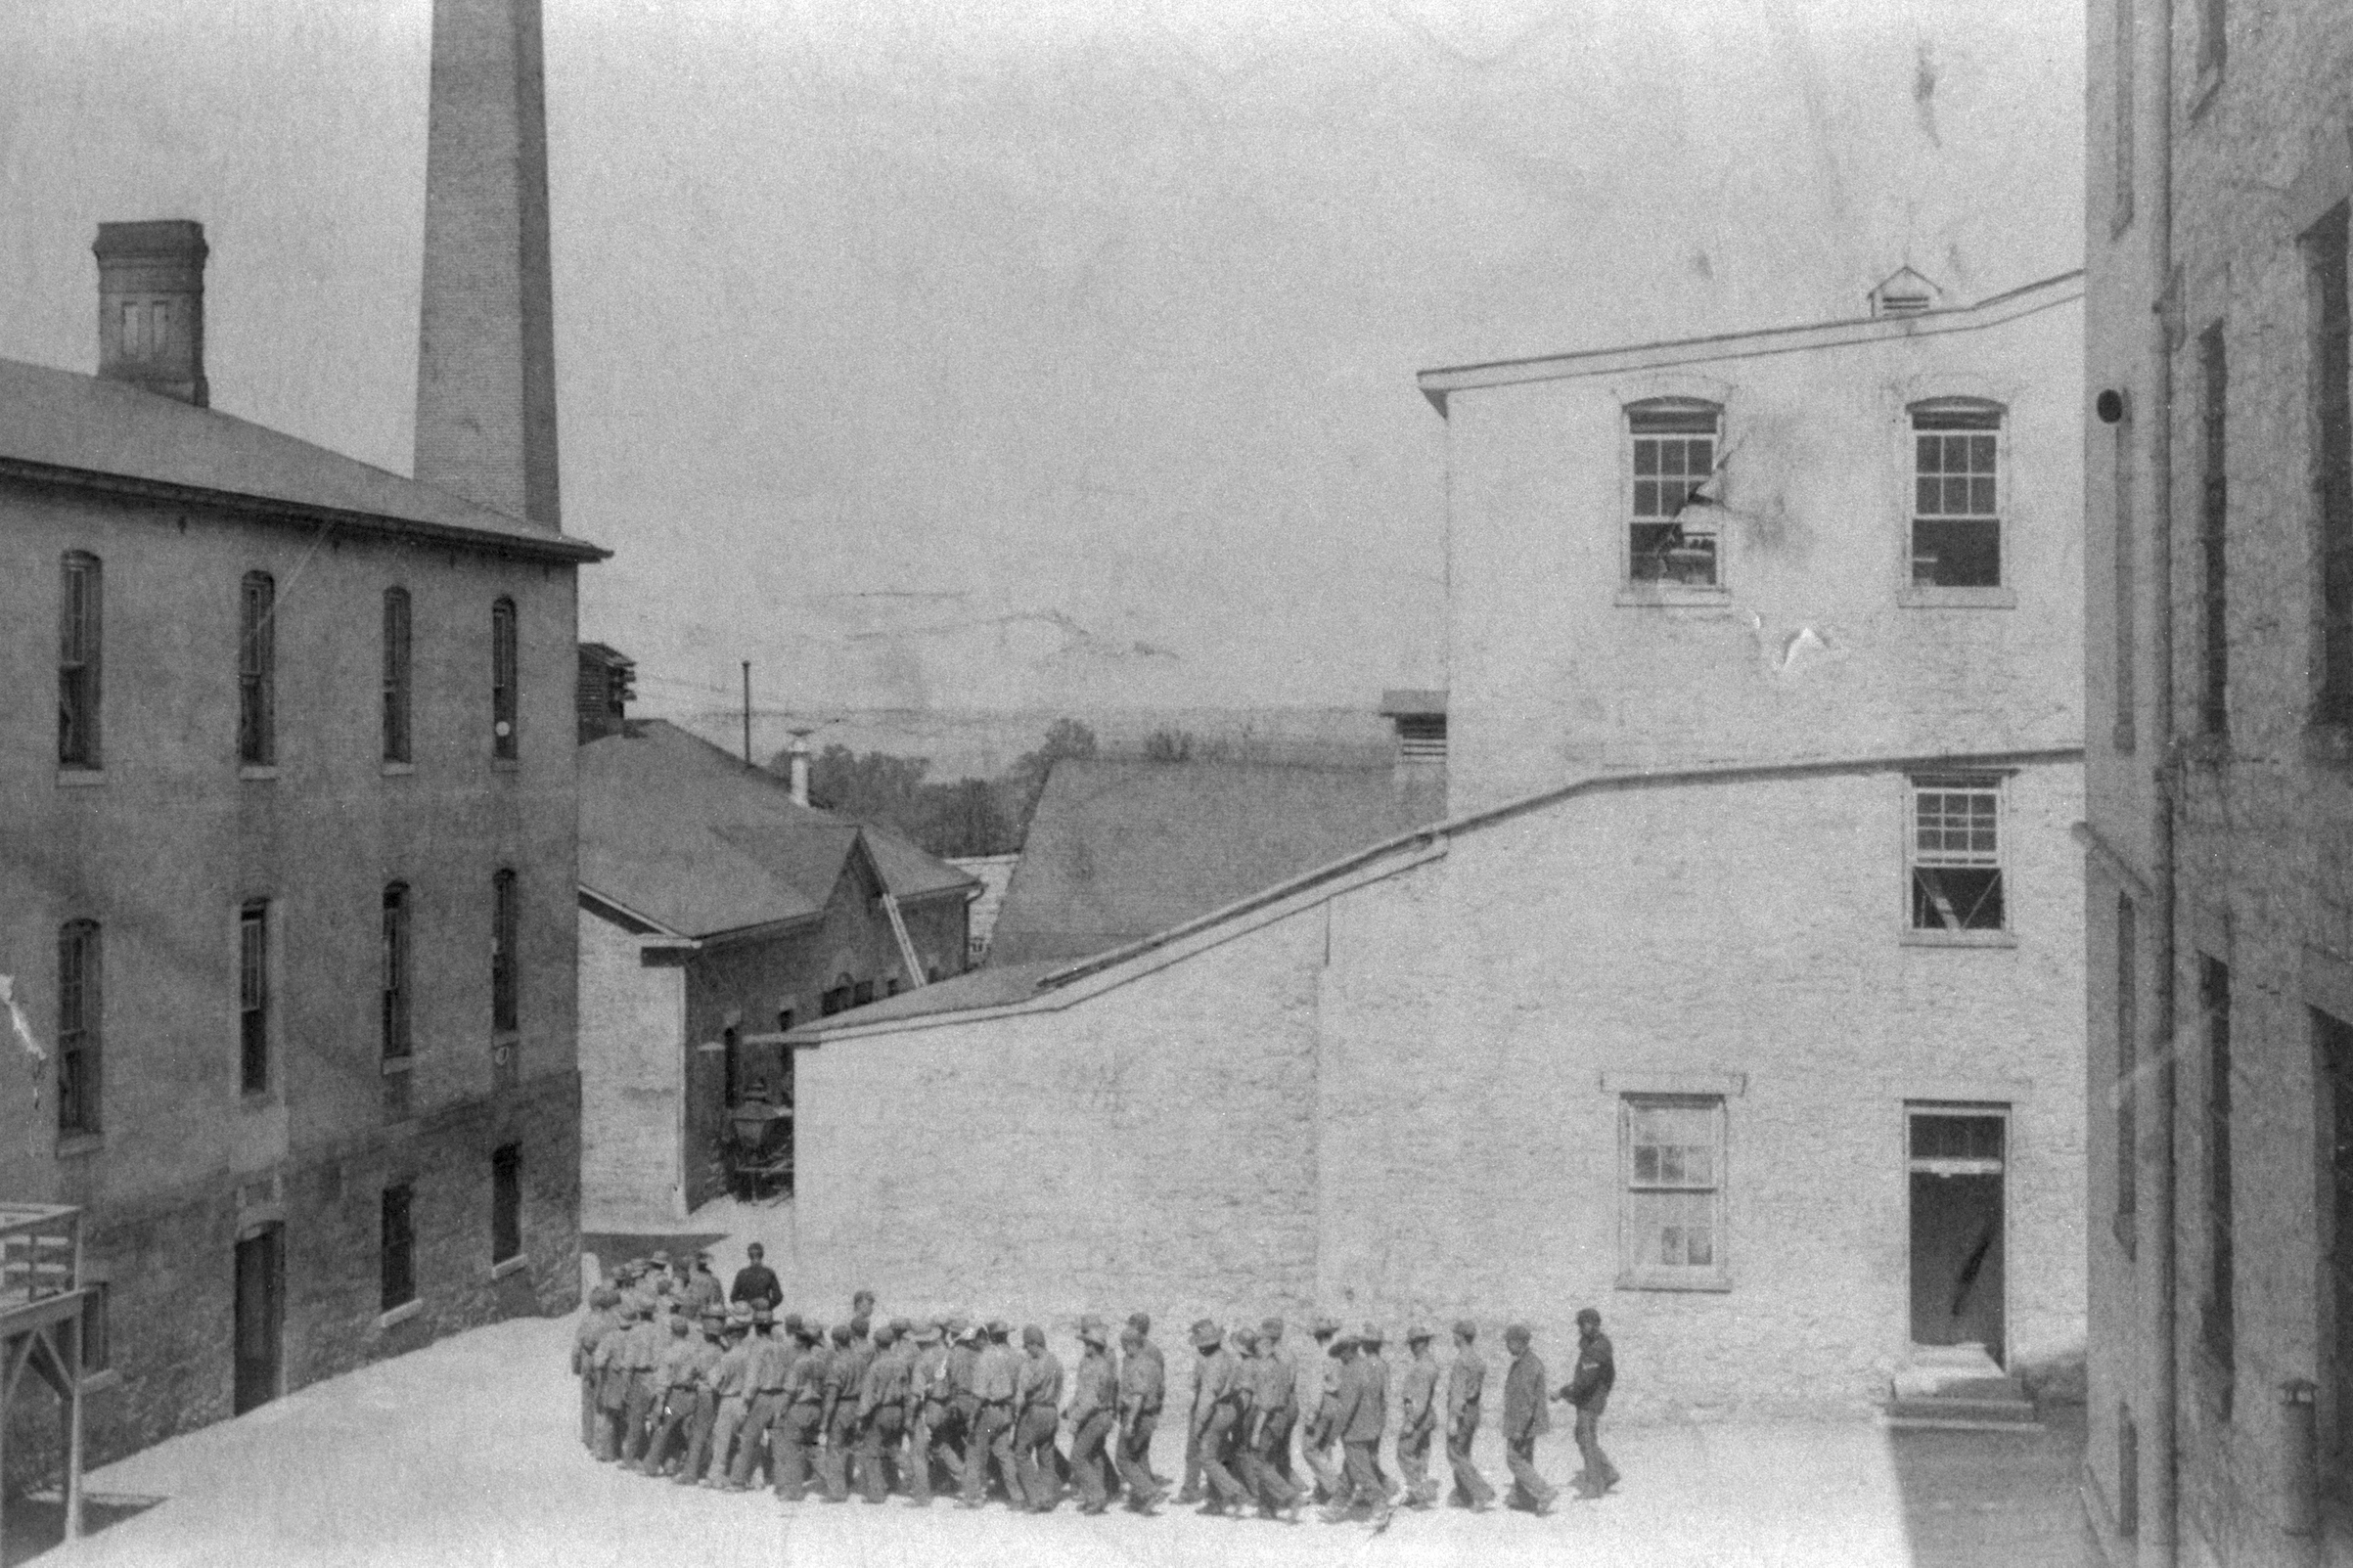 Prisoners at Fort Leavenworth Penetentiary march in a line to the mess hall for dinner ca. 1890s.